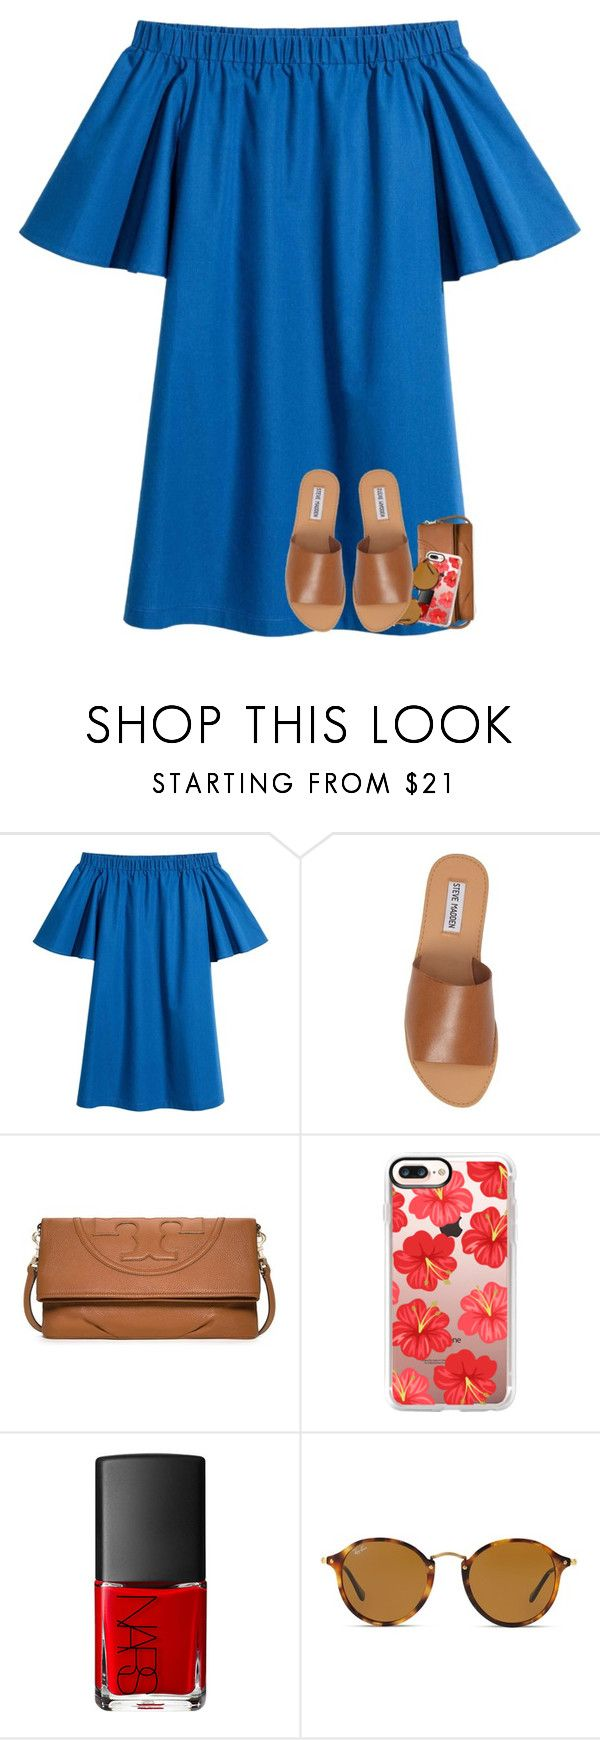 """oh summer, how i miss you"" by katie-1111 ❤ liked on Polyvore featuring Steve Madden, Tory Burch, Casetify, NARS Cosmetics and Ray-Ban"